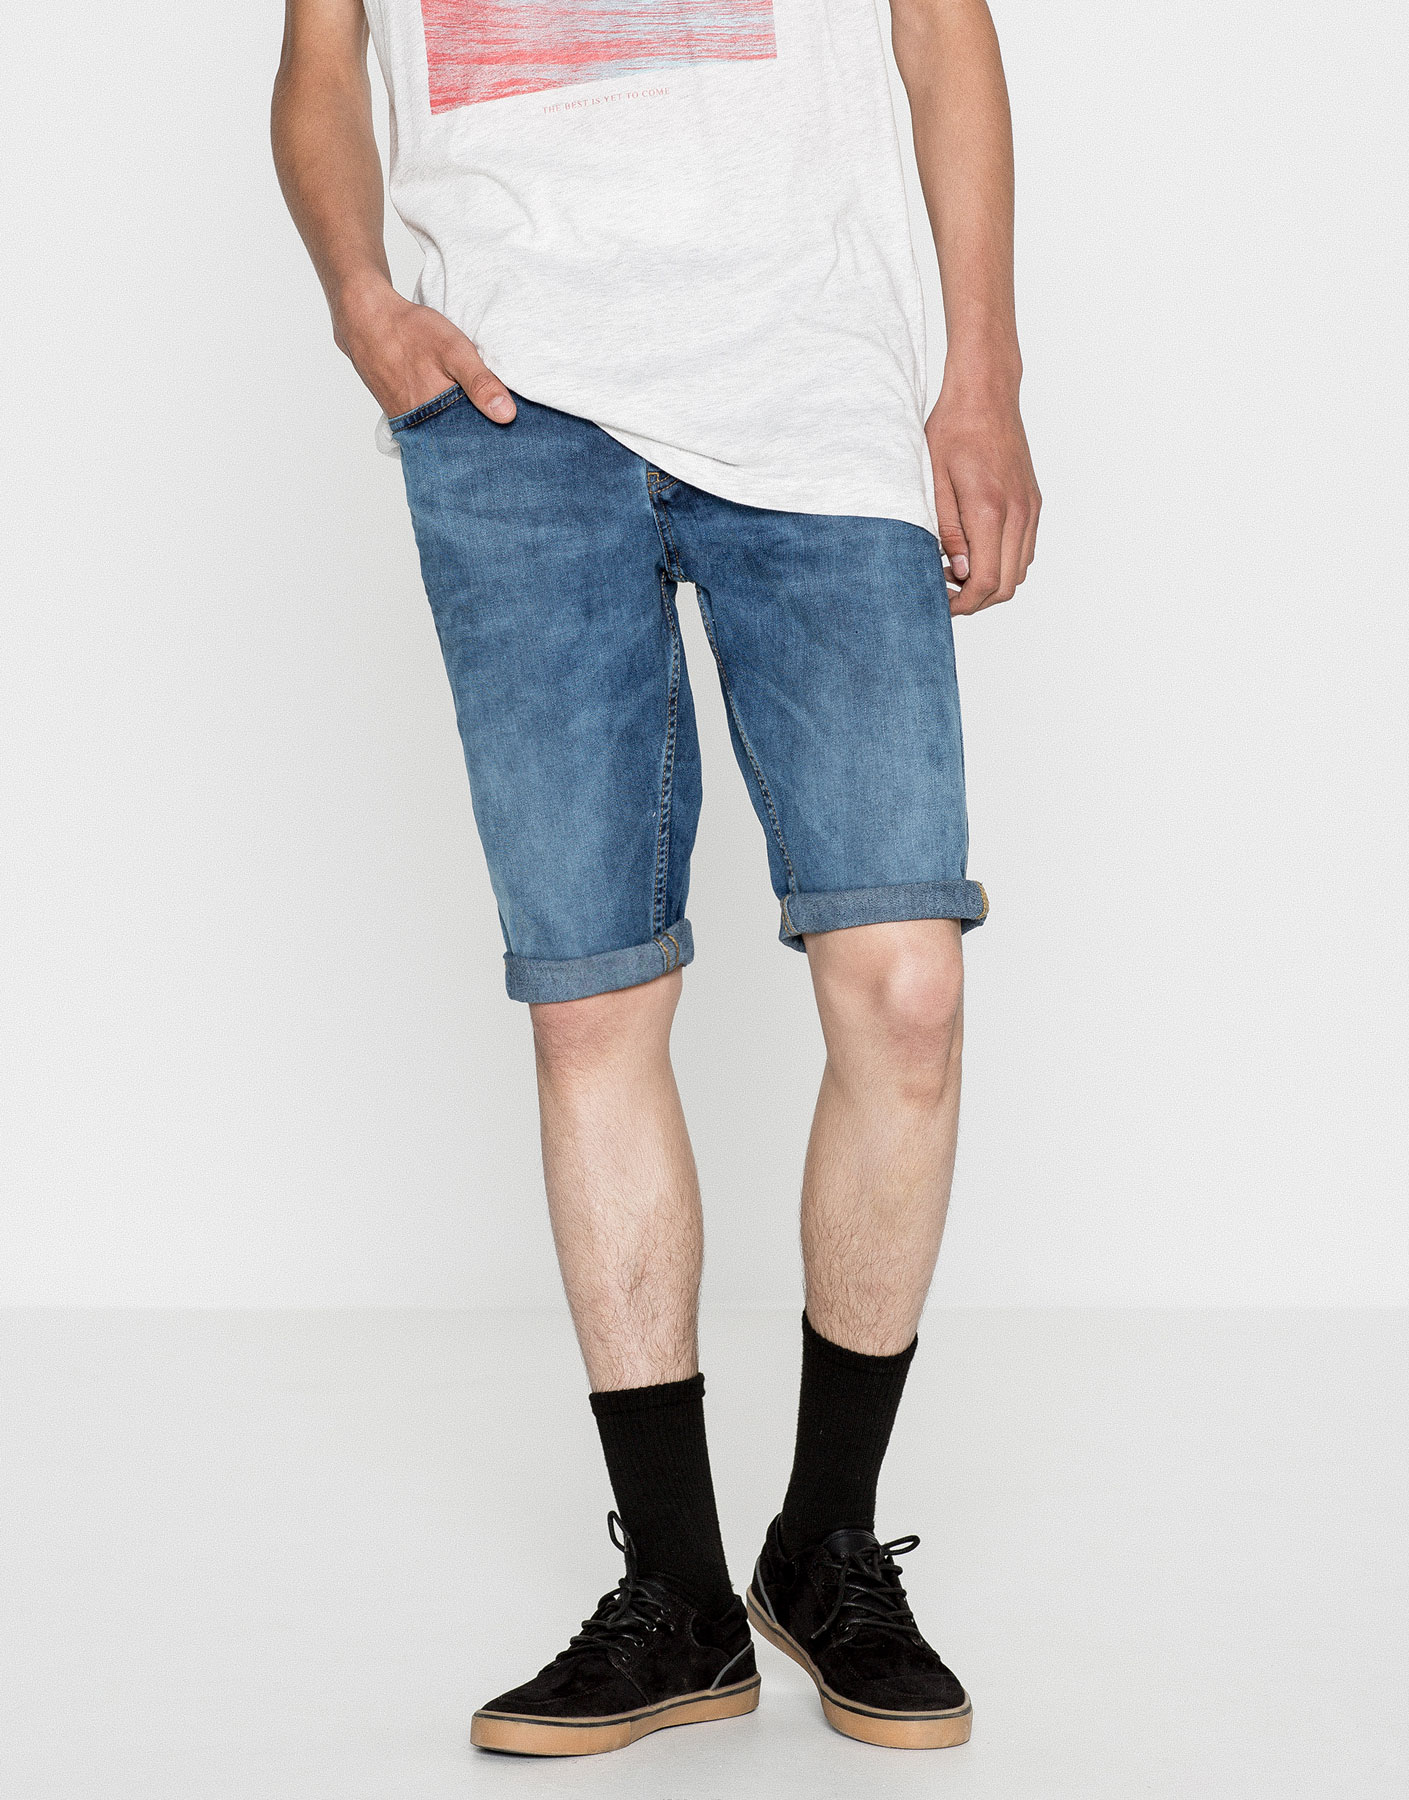 Denim skinny fit bermuda shorts